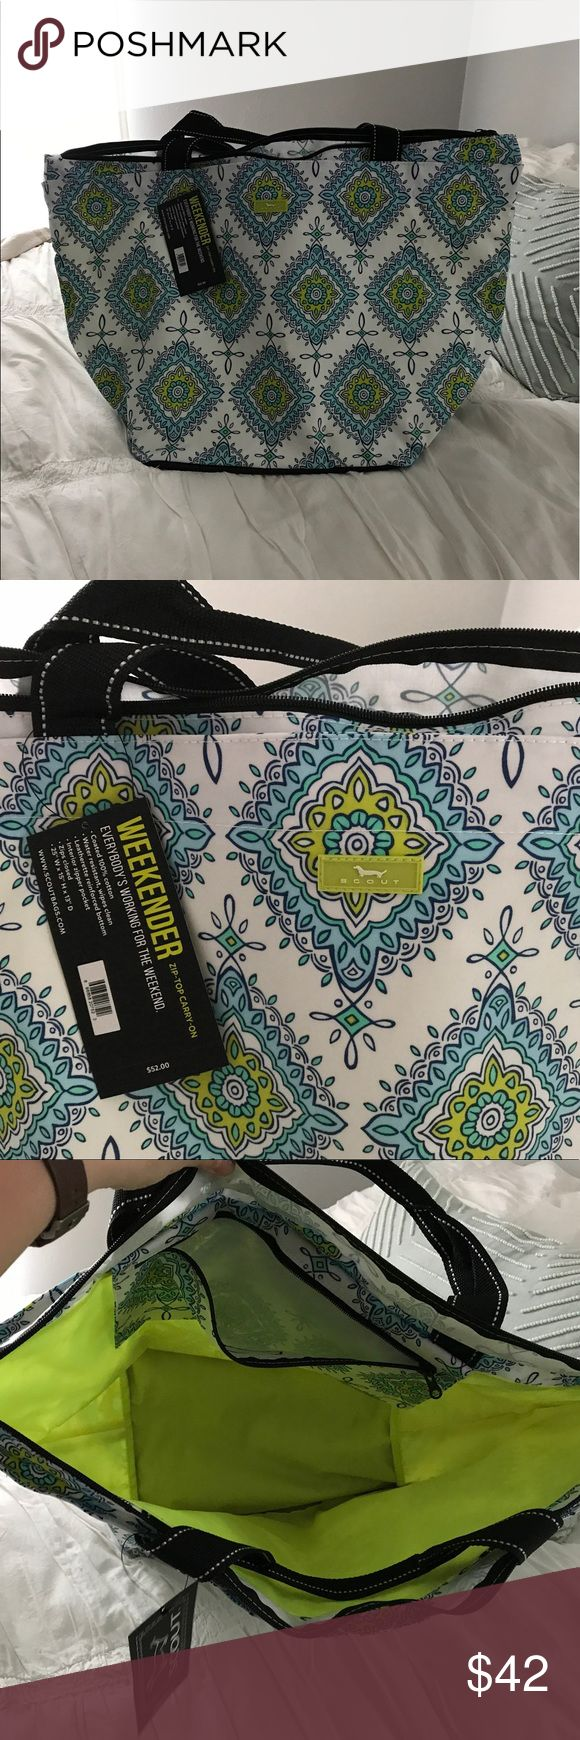 """Scout Weekender Bag Brand new! Never used. Water resistant, wipes clean. 25"""" W x 15"""" H x 13"""" D - great for the pool or beach! Scout Bags Travel Bags"""